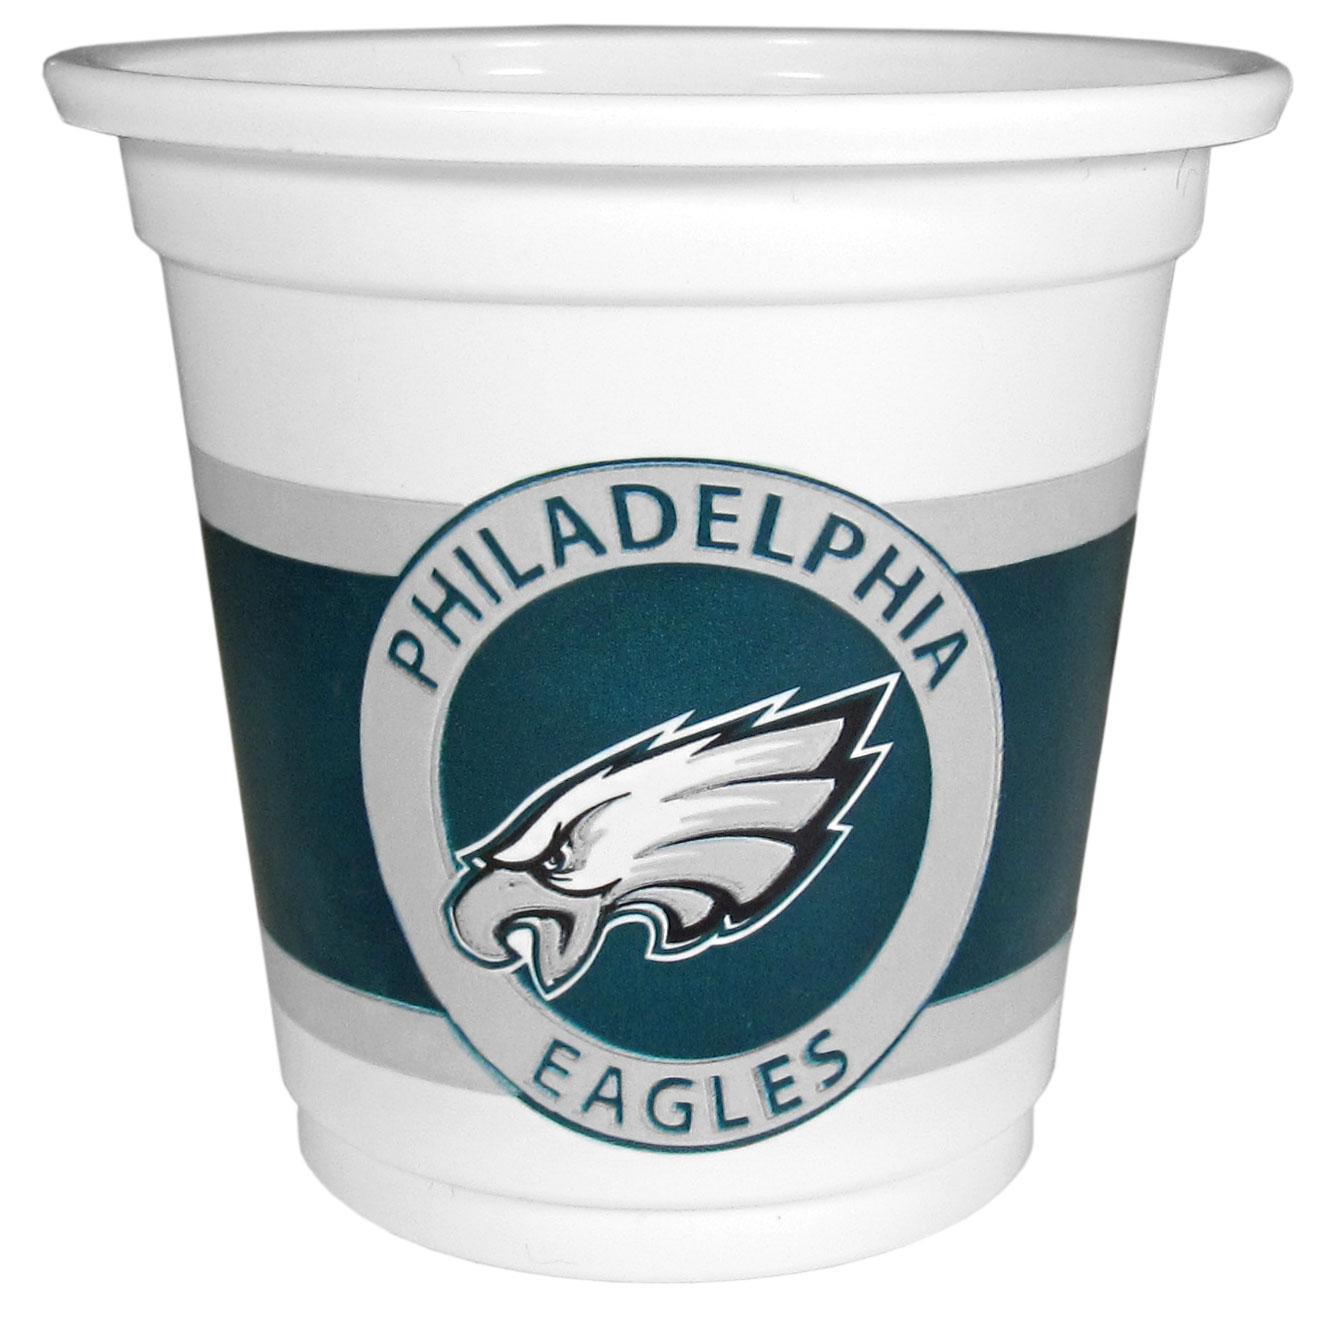 Philadelphia Eagles 18 Game Day Mini Cups - No better way to show your off your team pride on game day than these Philadelphia Eagles game day mini cups. The 3 ounce disposable glasses are the perfect addition to your game day party or tailgating BBQ. The cups come in a sleeve of 18 to make sure everyone is sporting true team spirit!